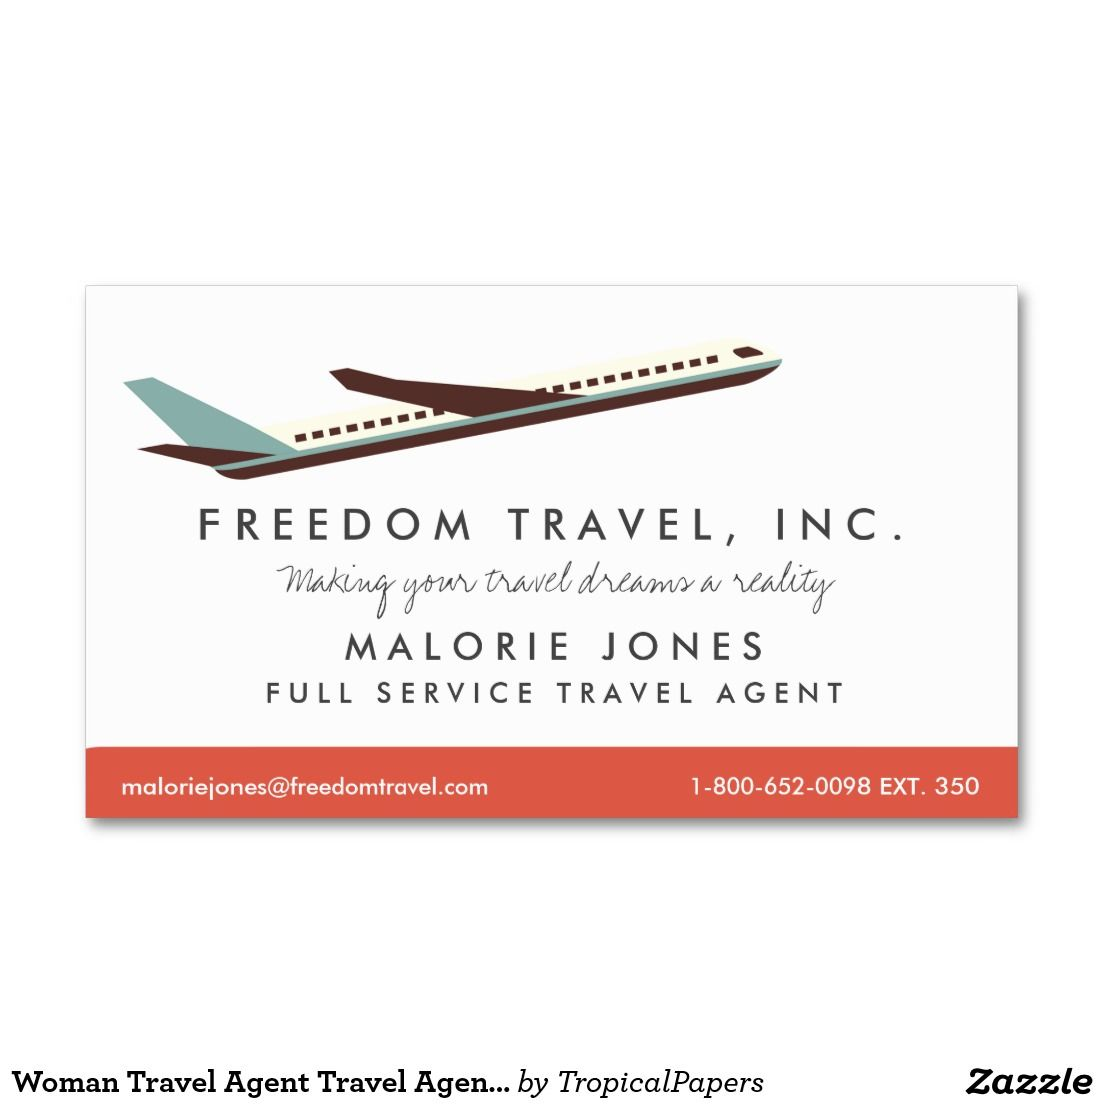 Woman Travel Agent Travel Agency Business Card SOLD, thank you to ...